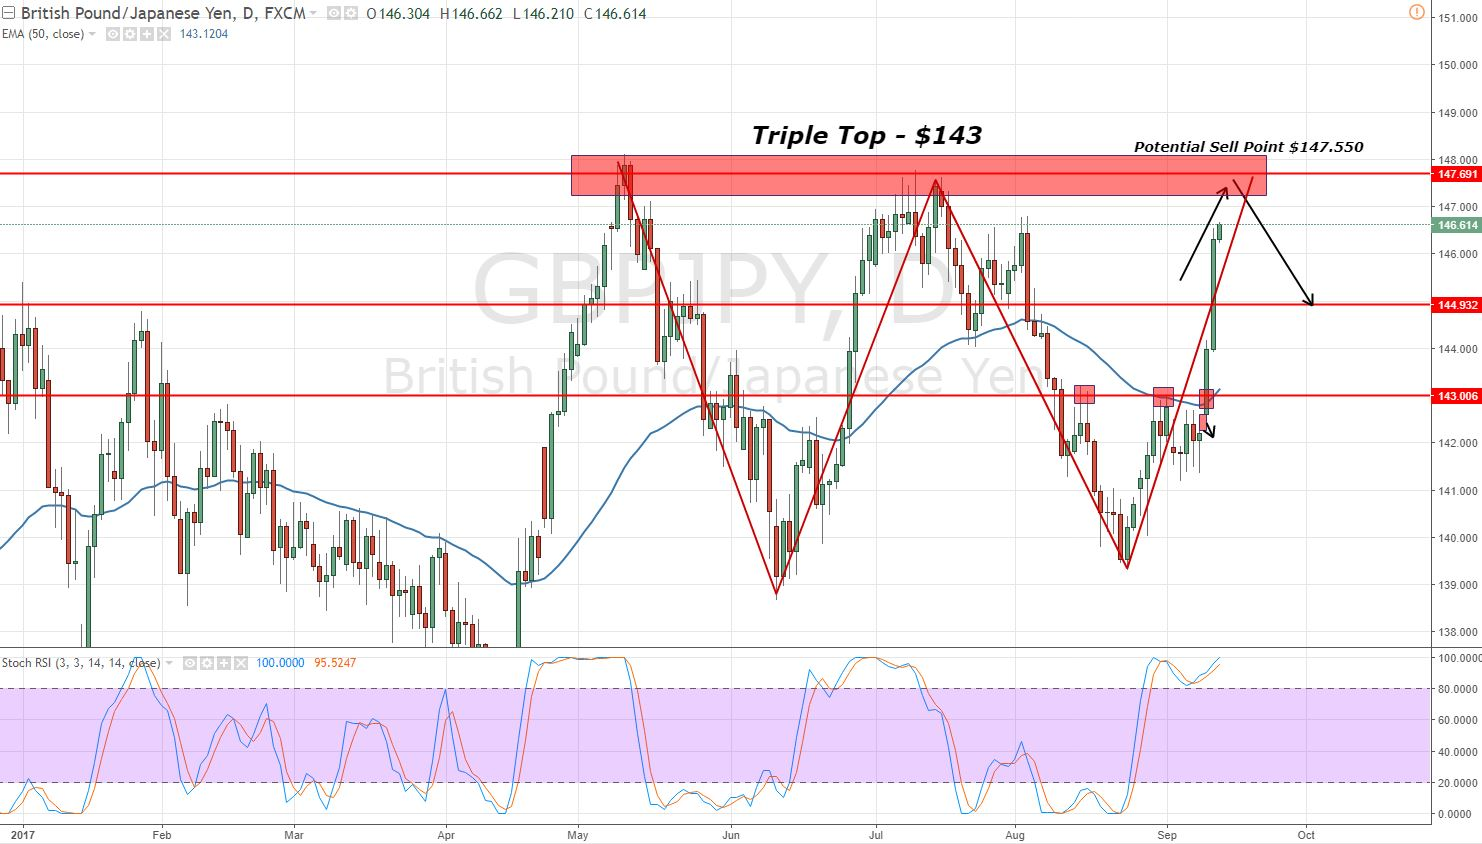 GBPJPY - Daily Chart - Triple Top